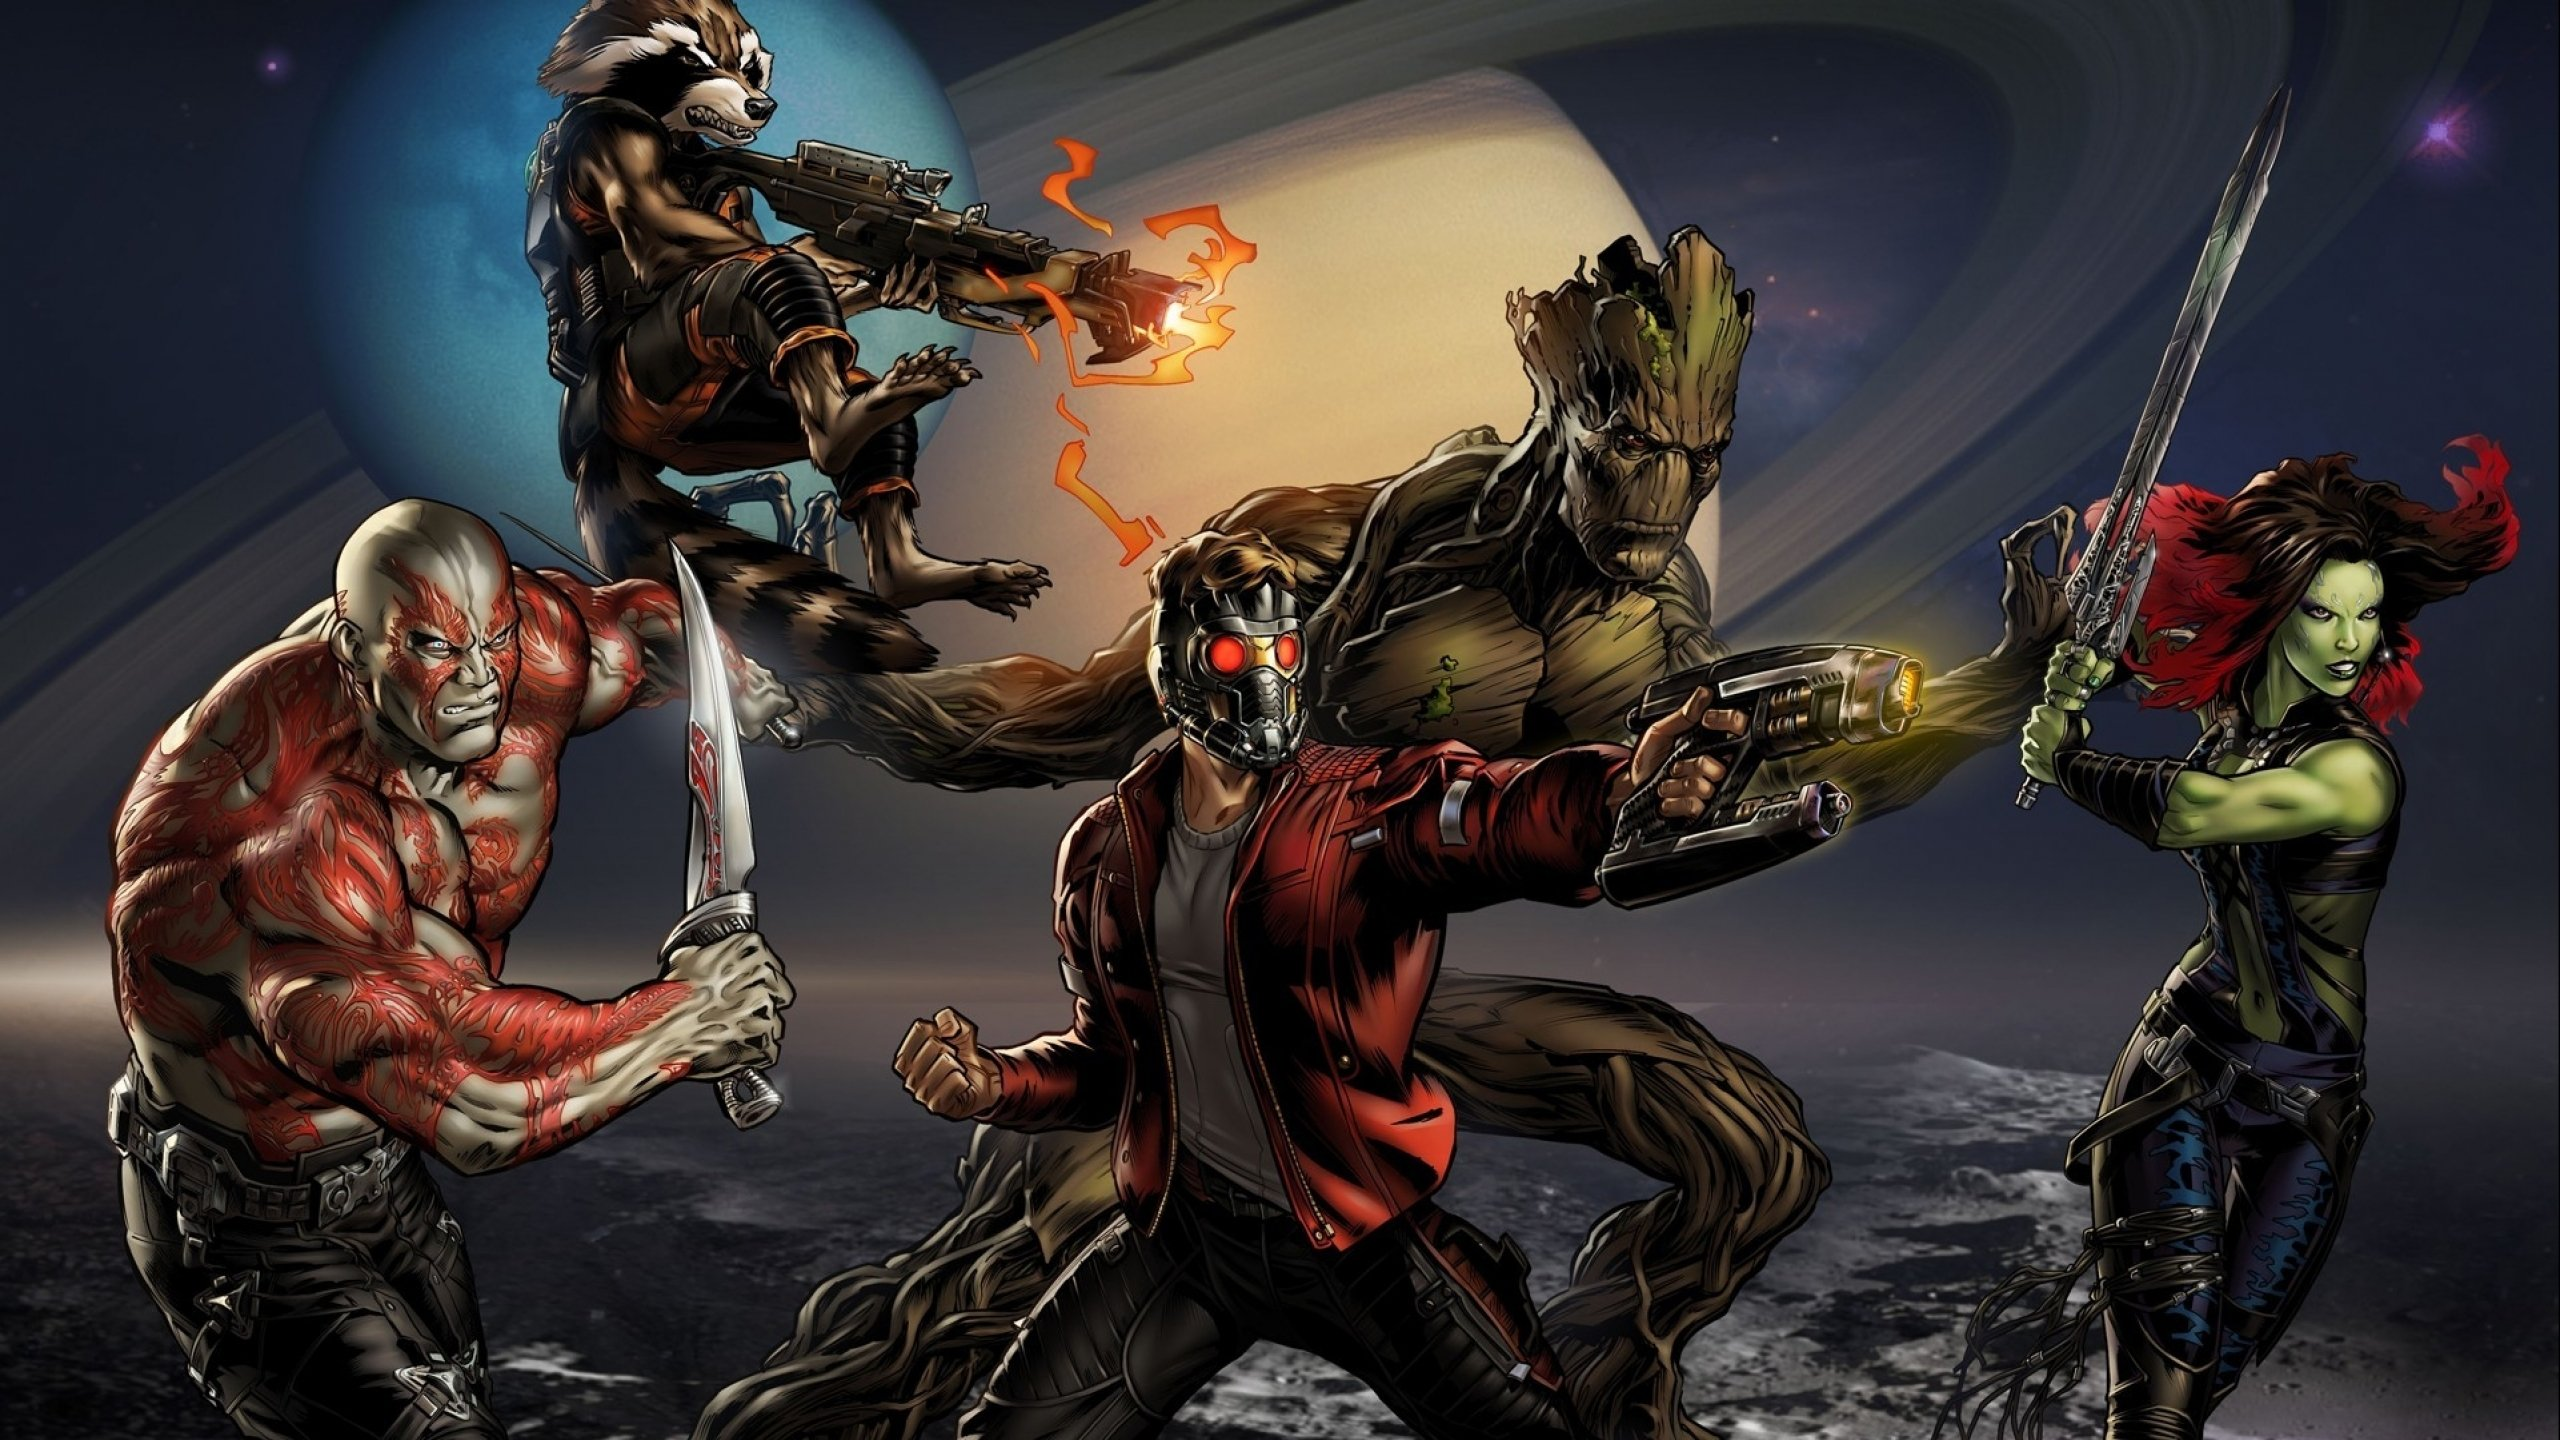 Image From Http Images6 Alphacoders Com 547 547196 Jpg Guardians Of The Galaxy Drax The Destroyer Marvel Avengers Alliance